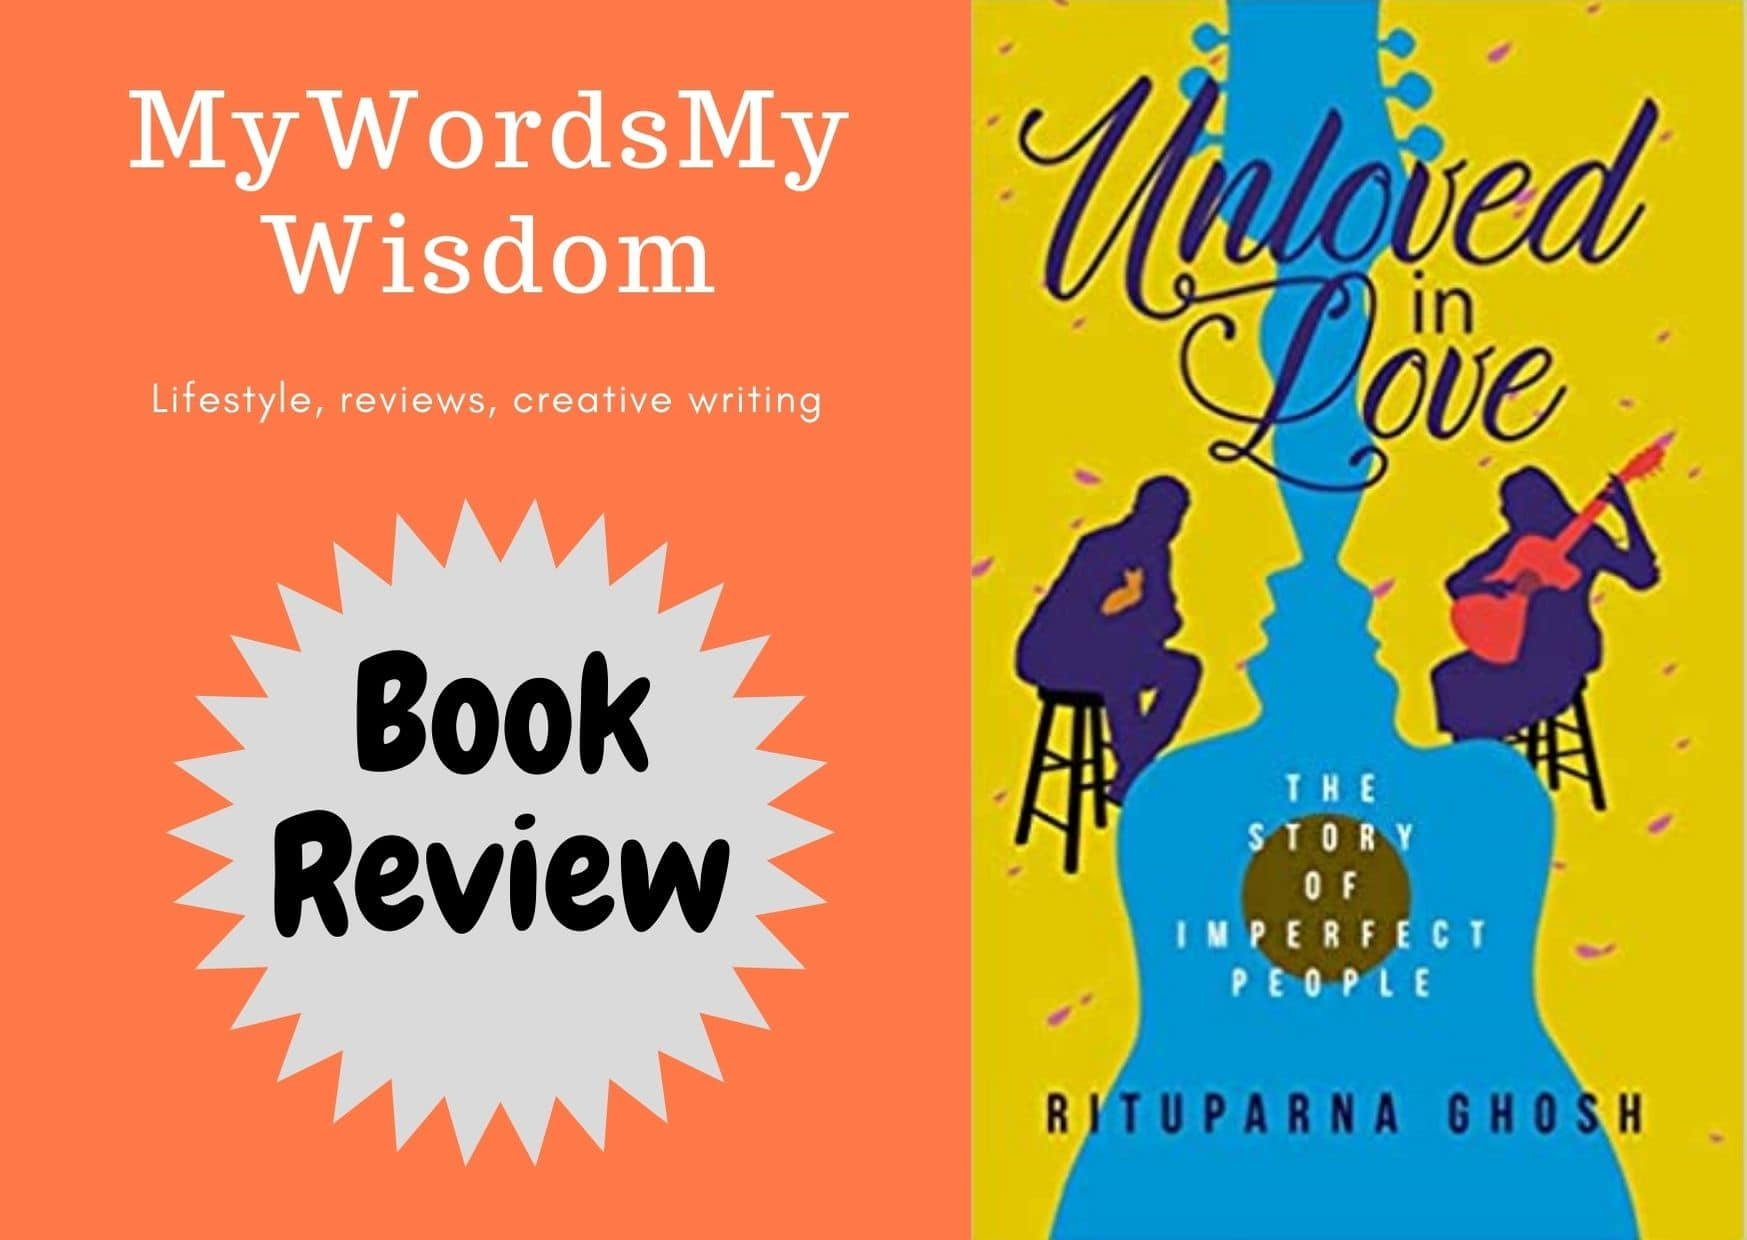 Unloved in love, a great piece of storytelling by Rituparna Ghosh #bookchatter